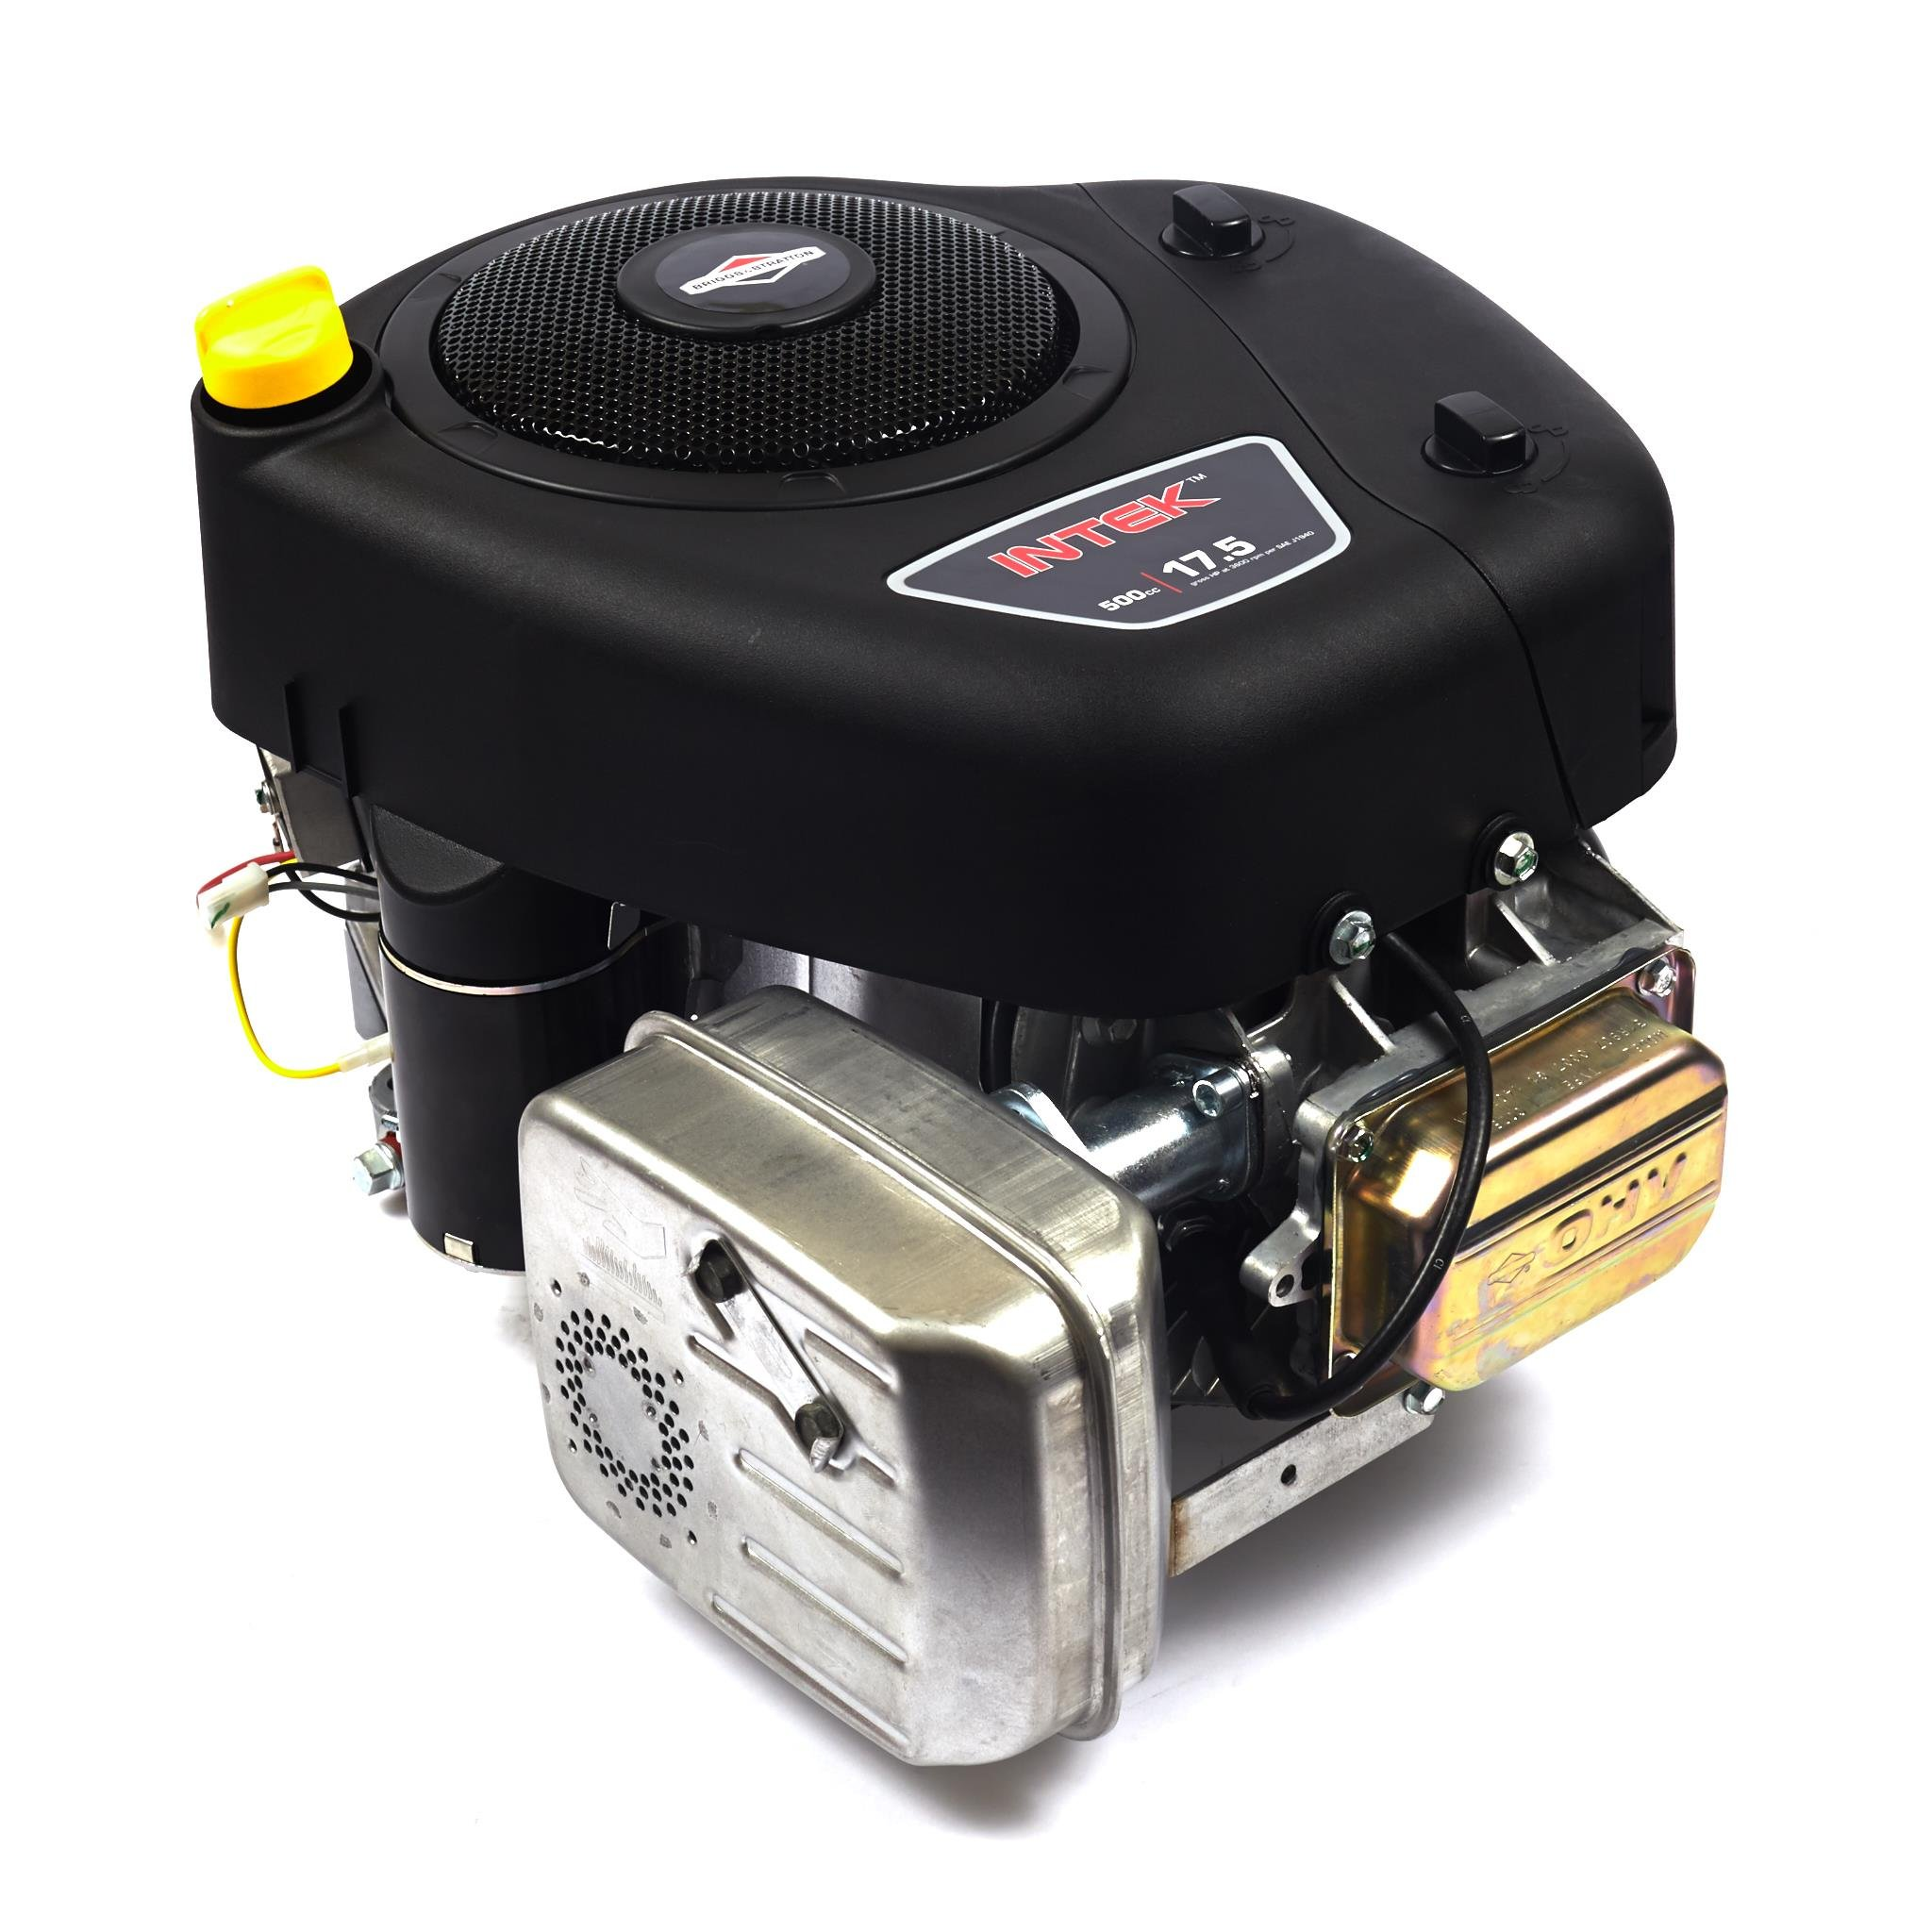 Briggs & Stratton 31R907-0007-G1 500cc 17.5 Gross HP Engine with 1-Inch by 3-5/32-Inch Length Crankshaft Tapped 7-16-20-Inch by Briggs & Stratton